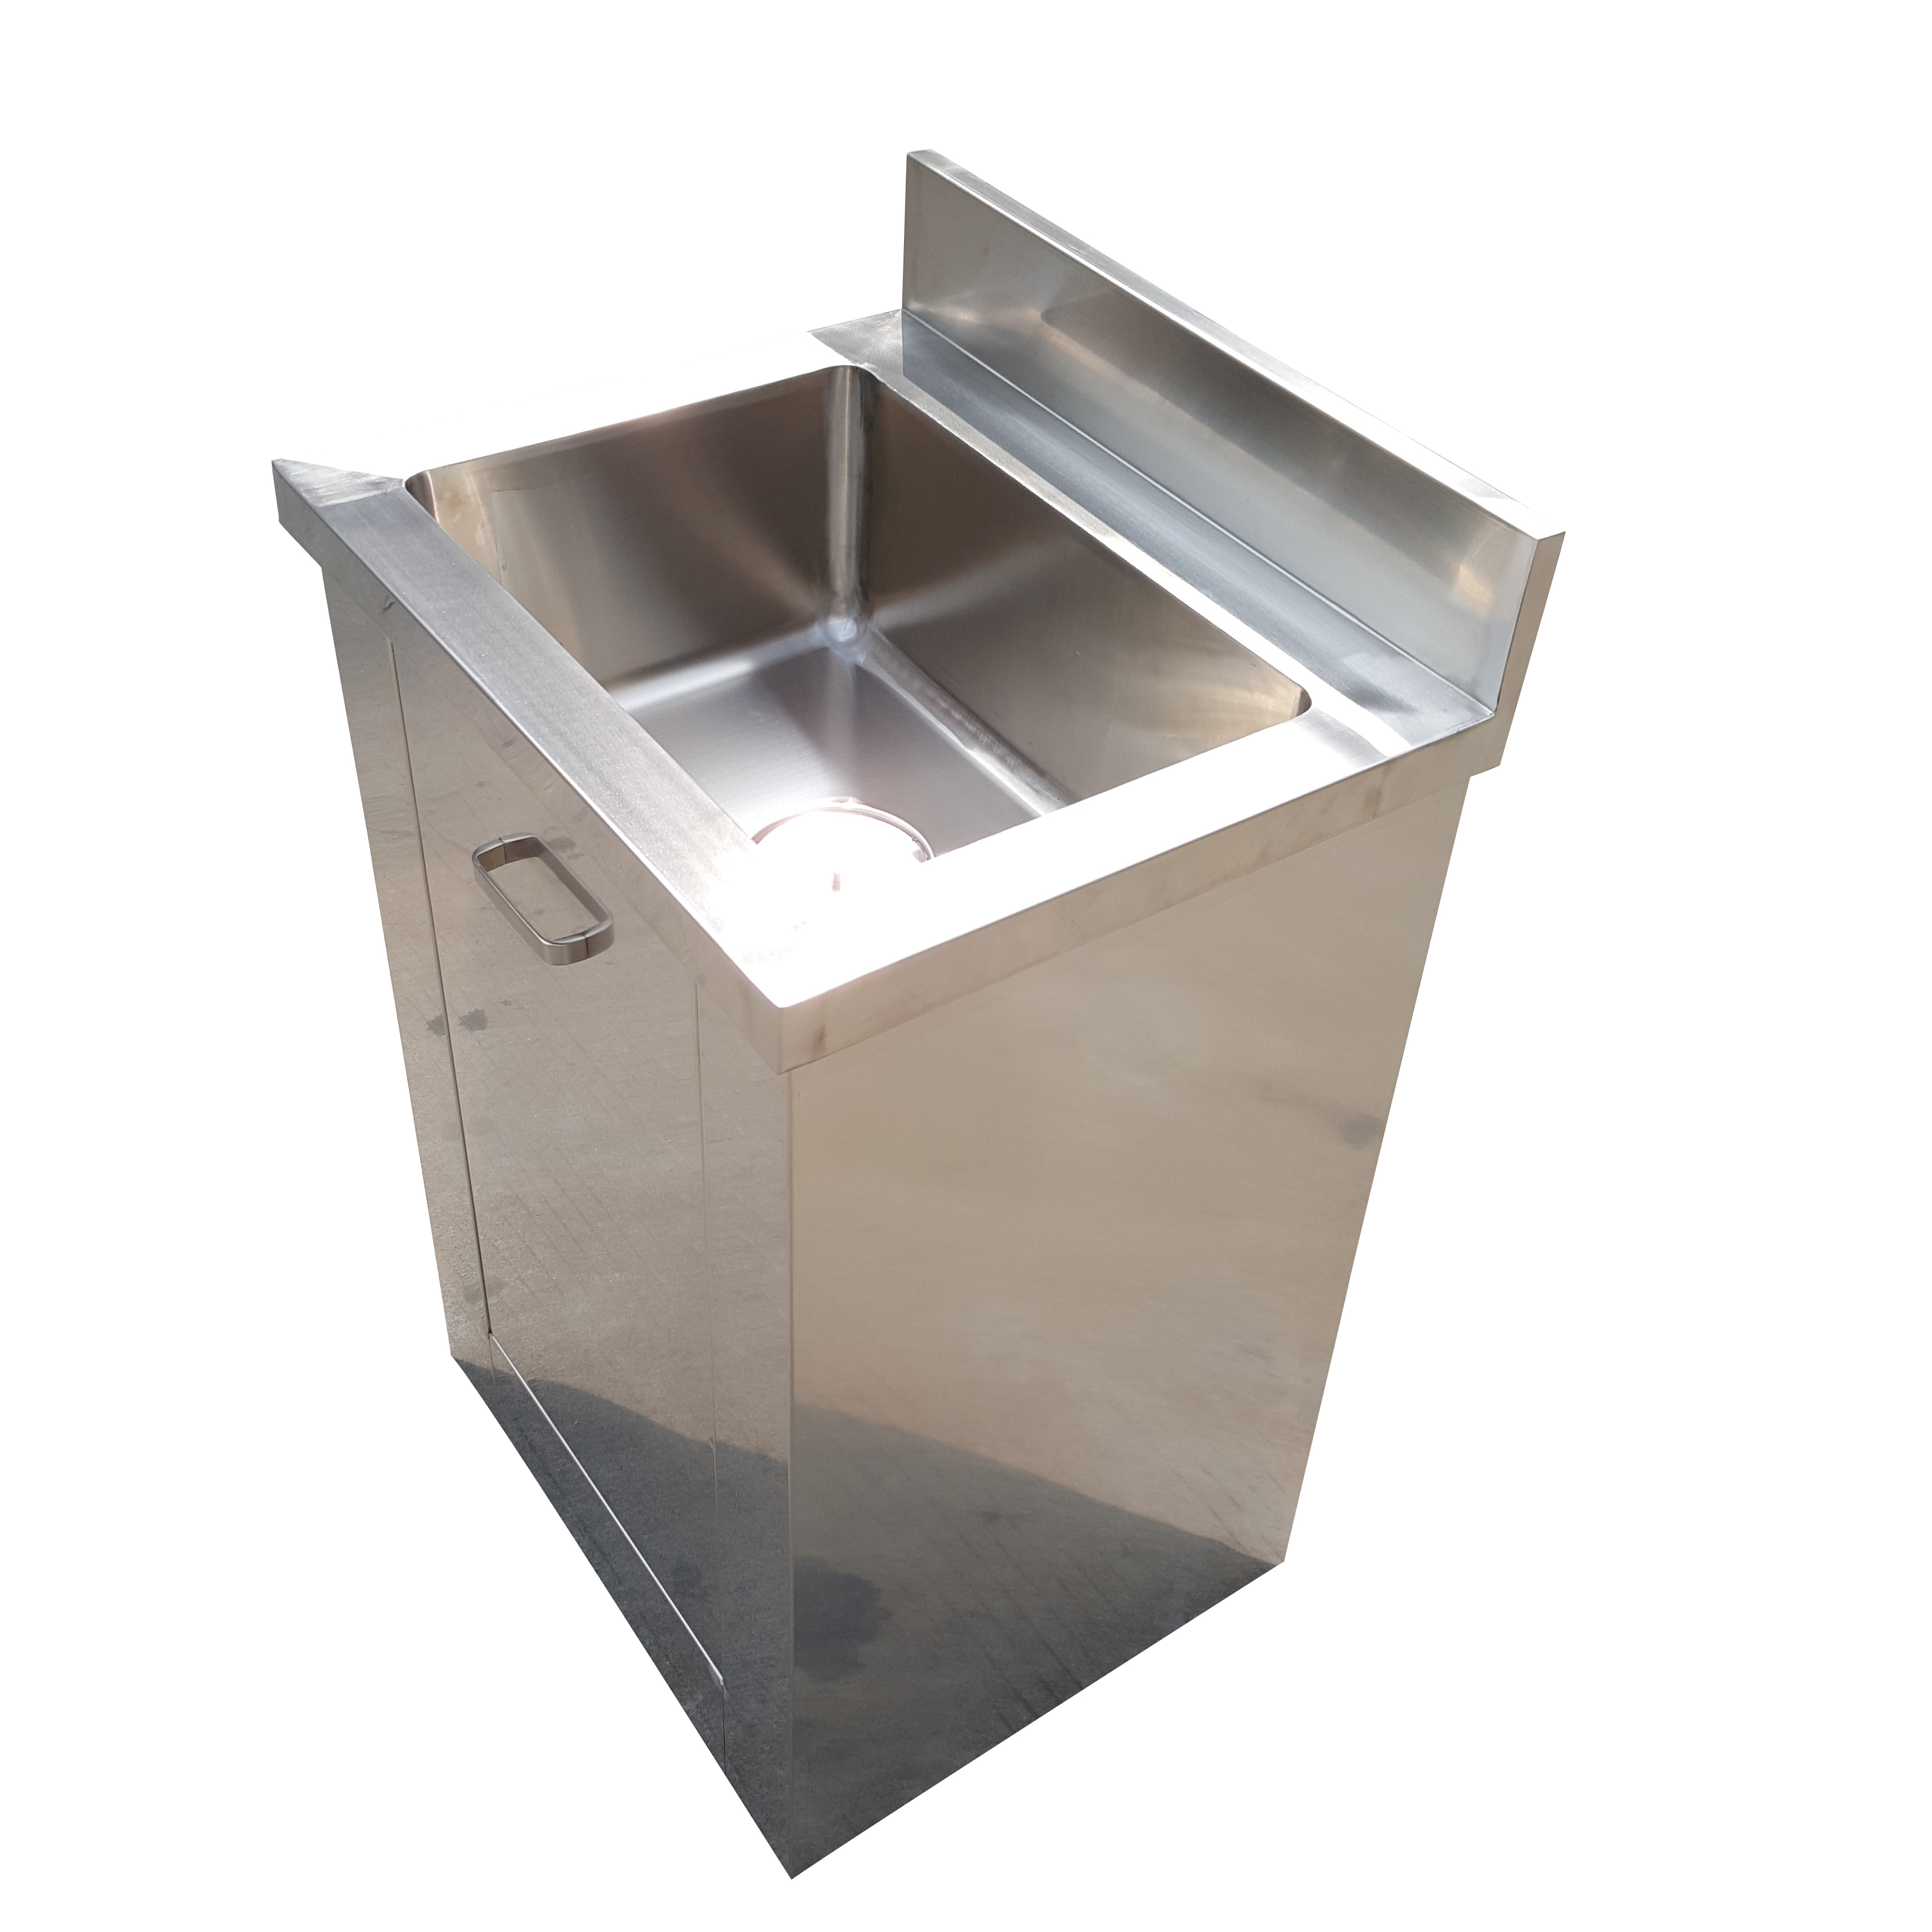 Hand Sink Cleaning With Faucet Multi Hospital Medical Surgical Scrub Sink Stainless Steel